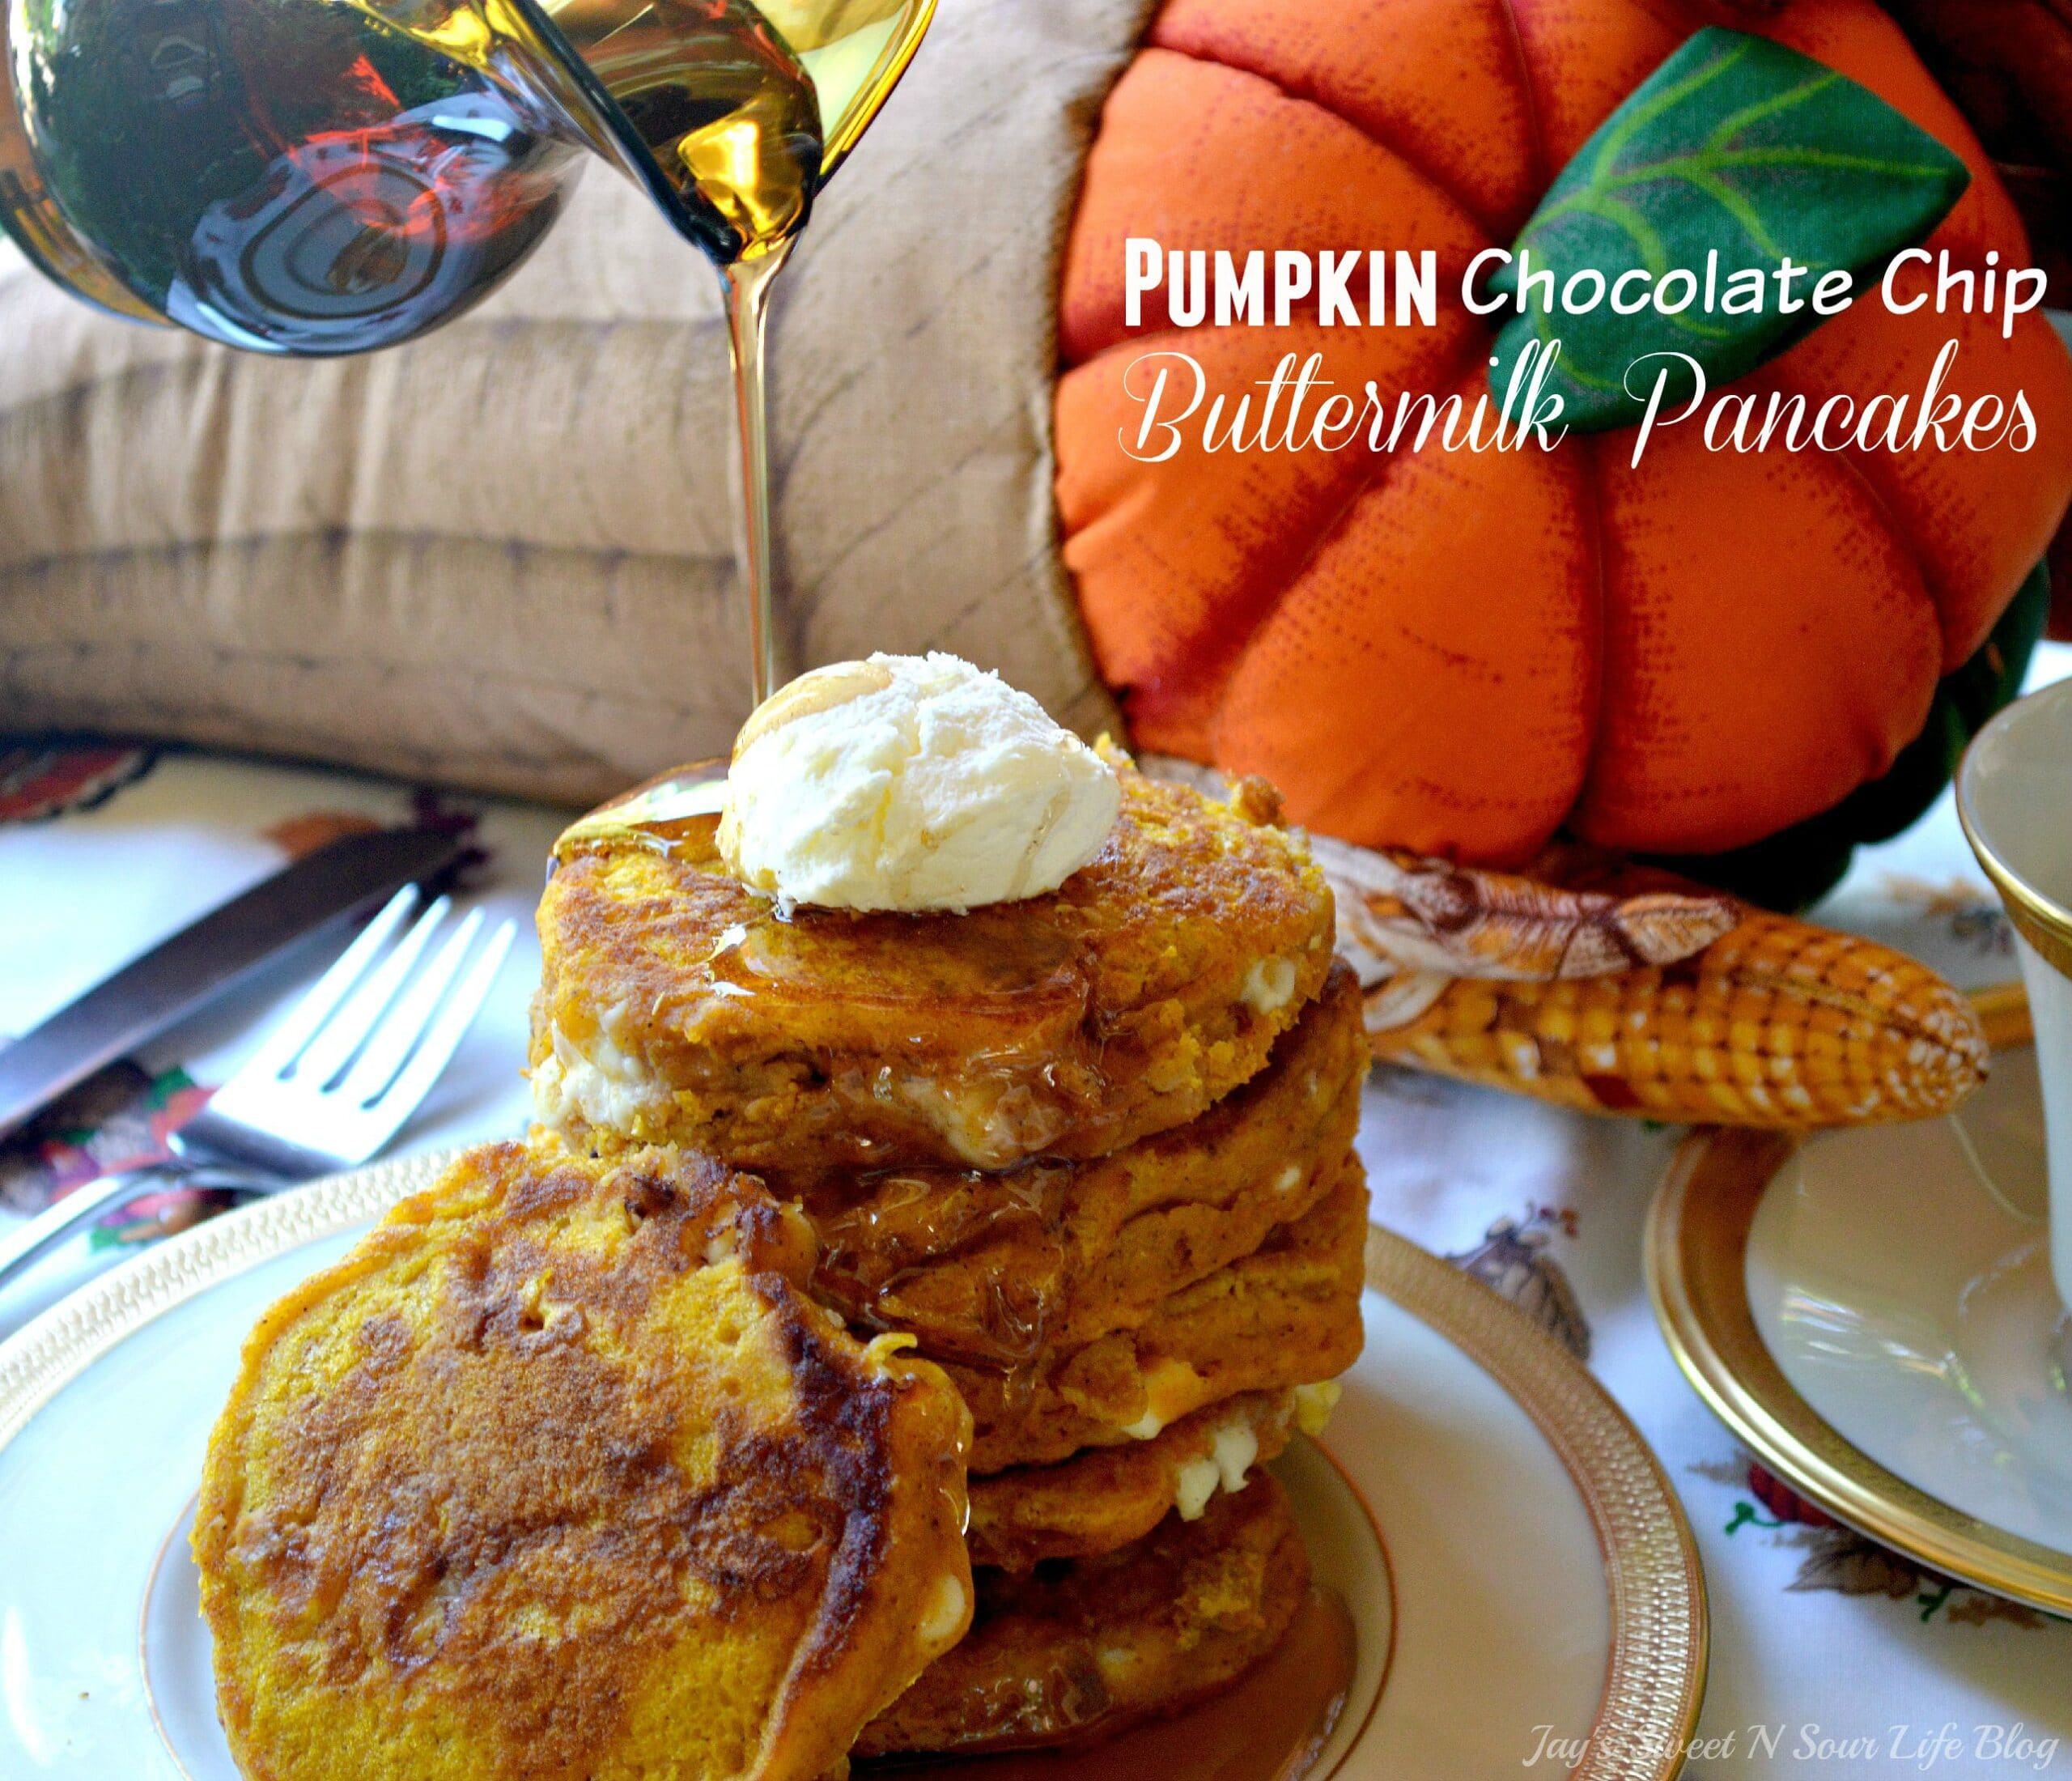 . Pumpkin Chocolate Chip Buttermilk PancakesNothing says fall like my Pumpkin Chocolate Chip Buttermilk Pancakes. These from-scratch pumpkin pancakes are made with real pumpkins and buttermilk making them super moist and fluffy, they are perfect for fall mornings.